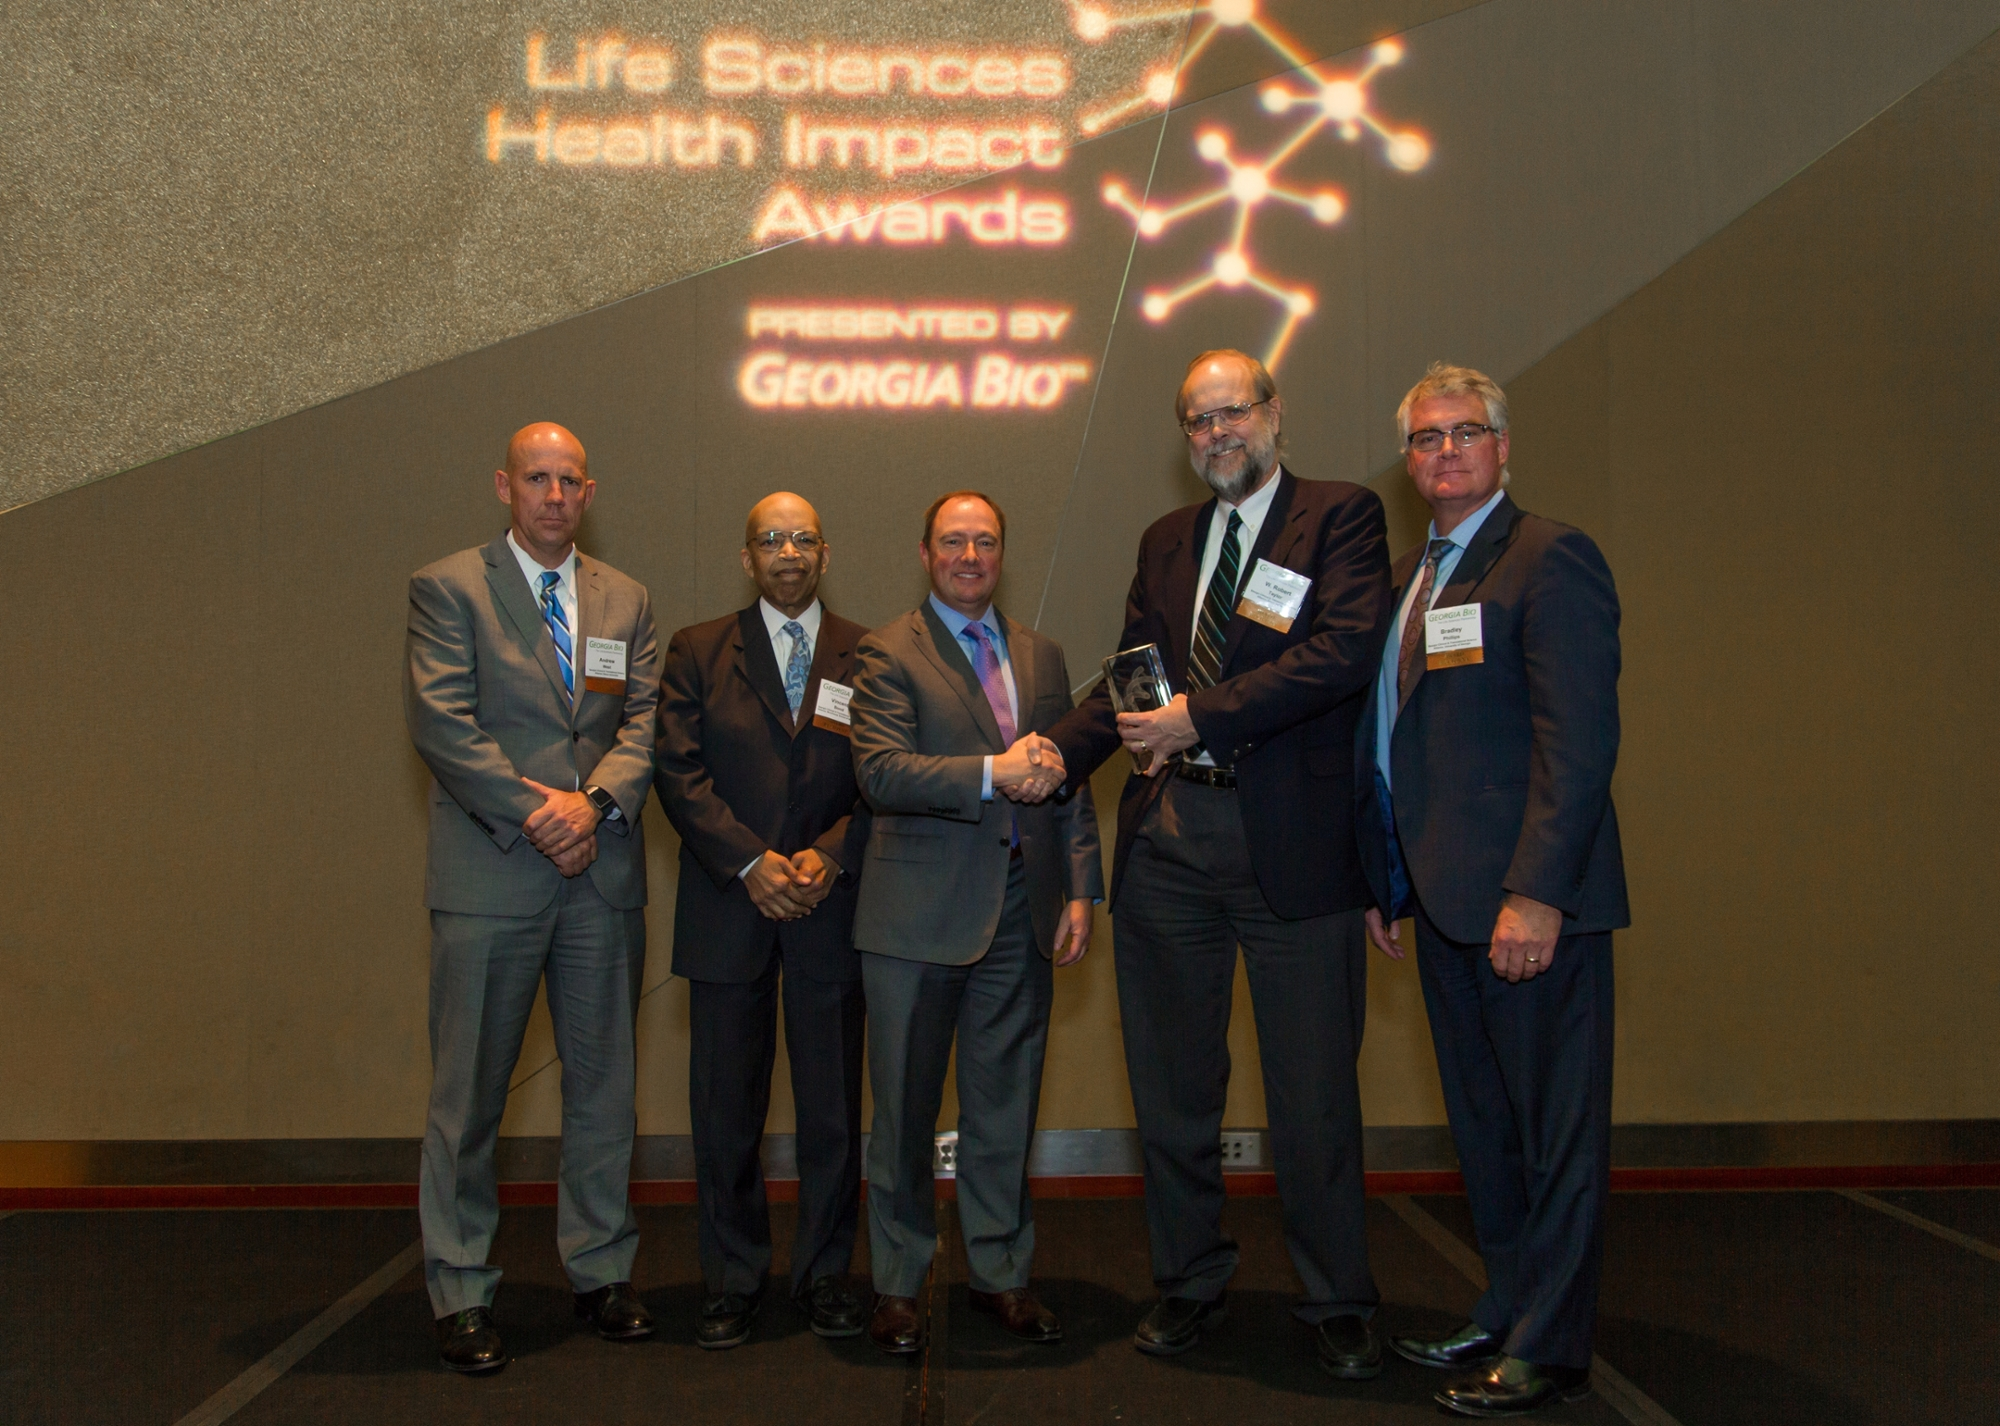 Georgia CTSA leaders accepting the award from Georgia Bio President